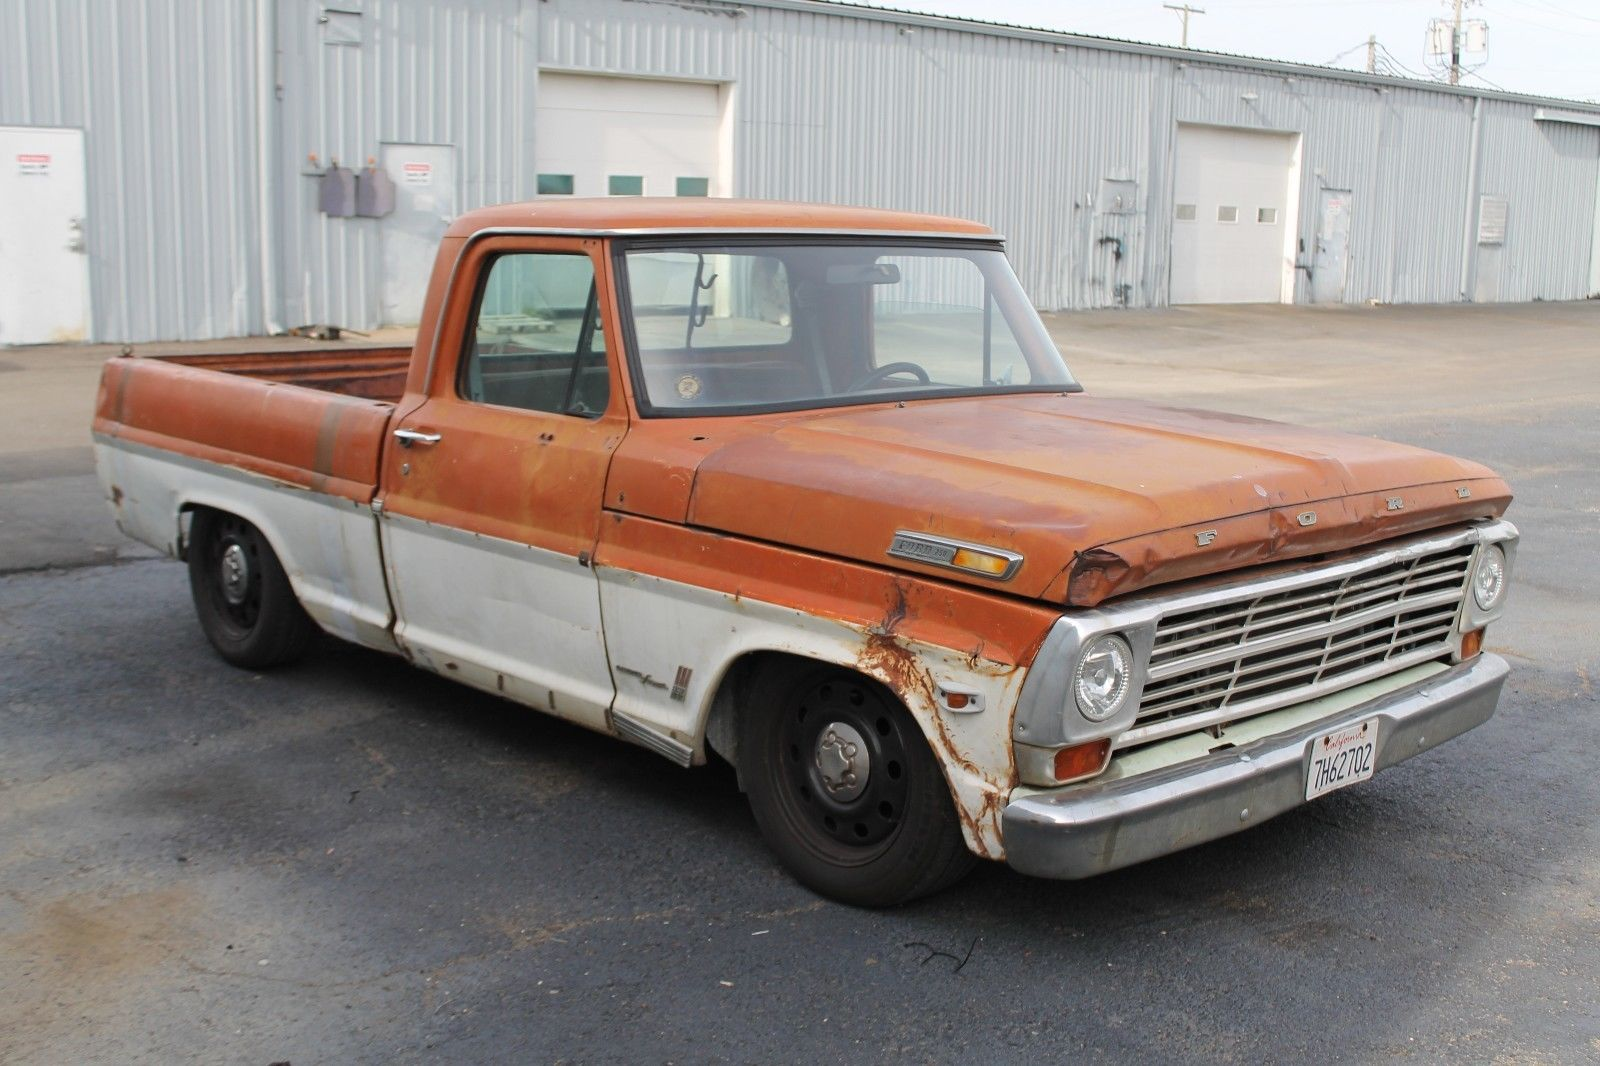 this 1969 ford f 250 is for sale on ebay esd may earn commisions when a product is purchased from this link in evansville indiana with no reserve